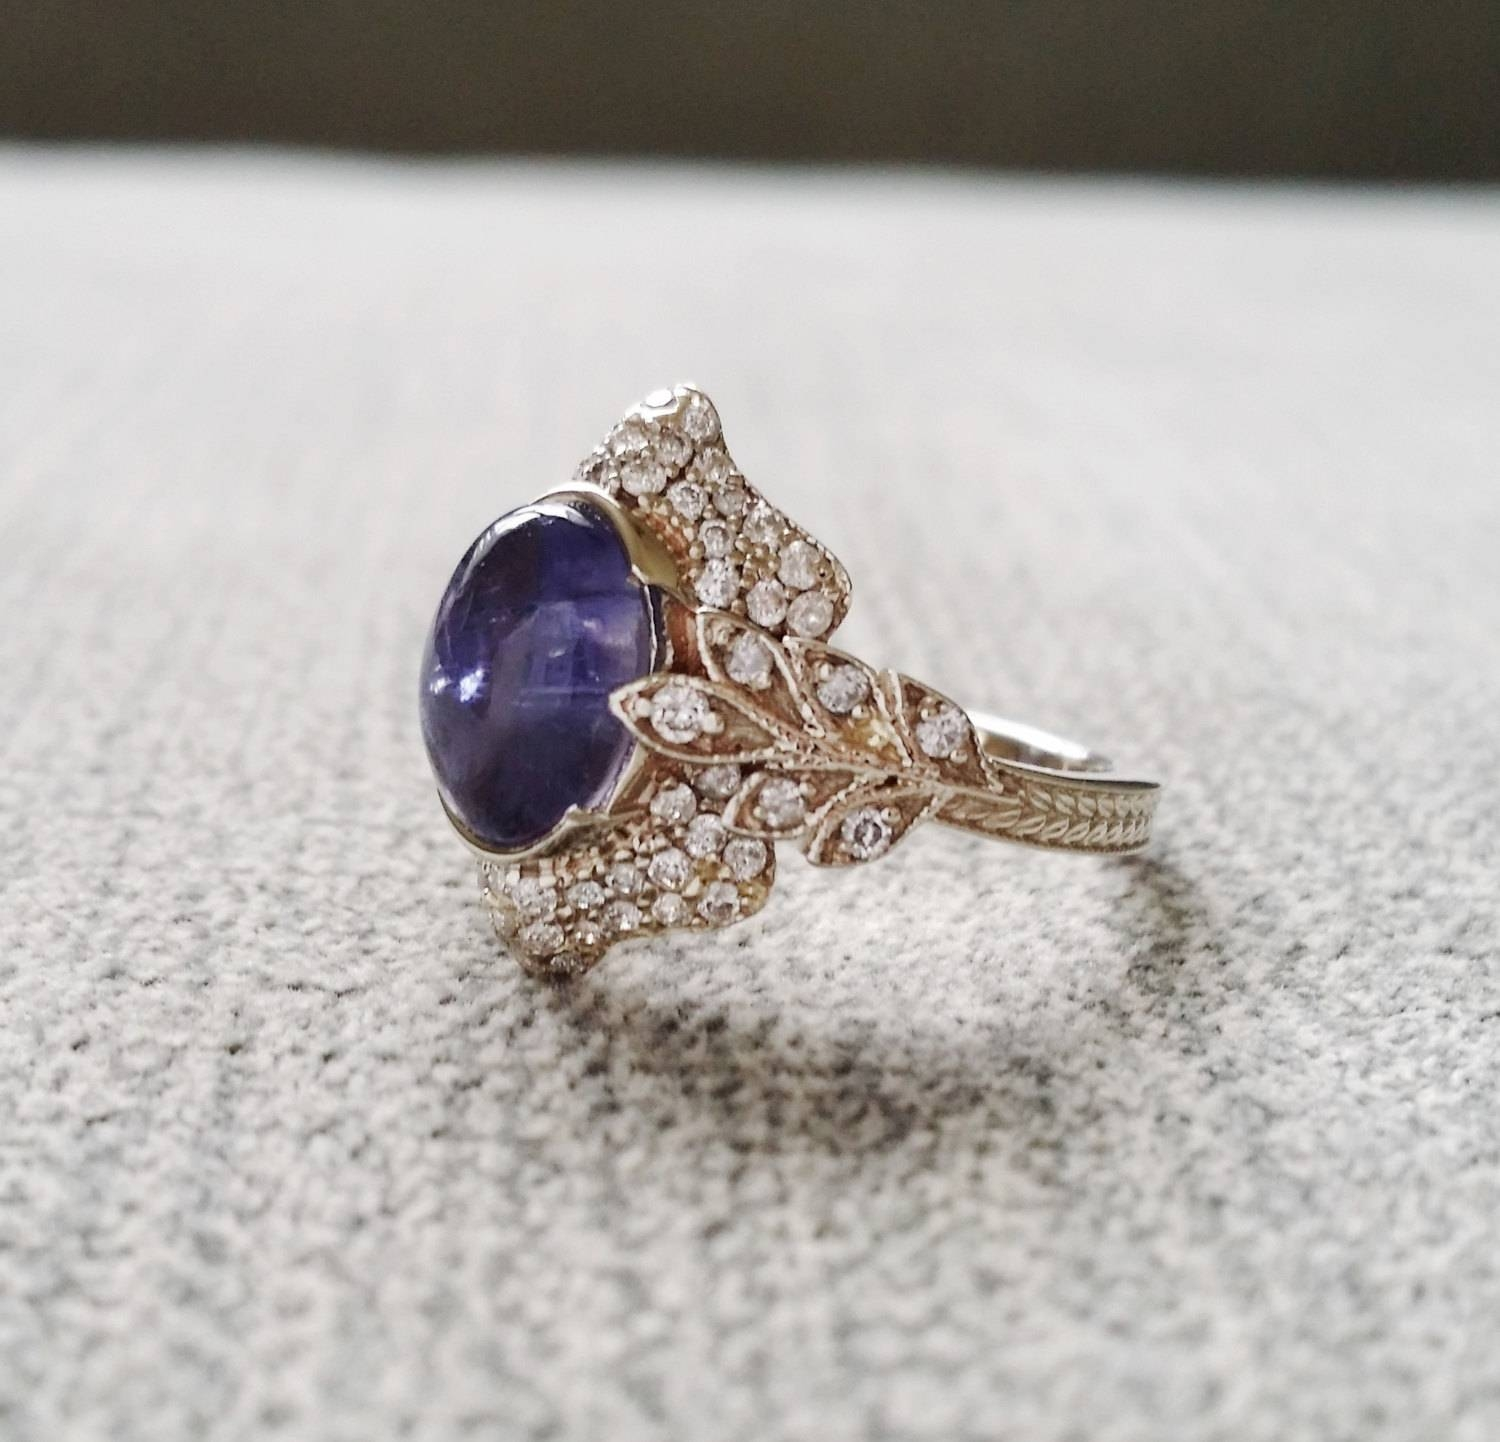 Antique Iolite Diamond Ring Gemstone Engagement Ring Violet Pertaining To Viking Engagement Rings (Gallery 7 of 15)